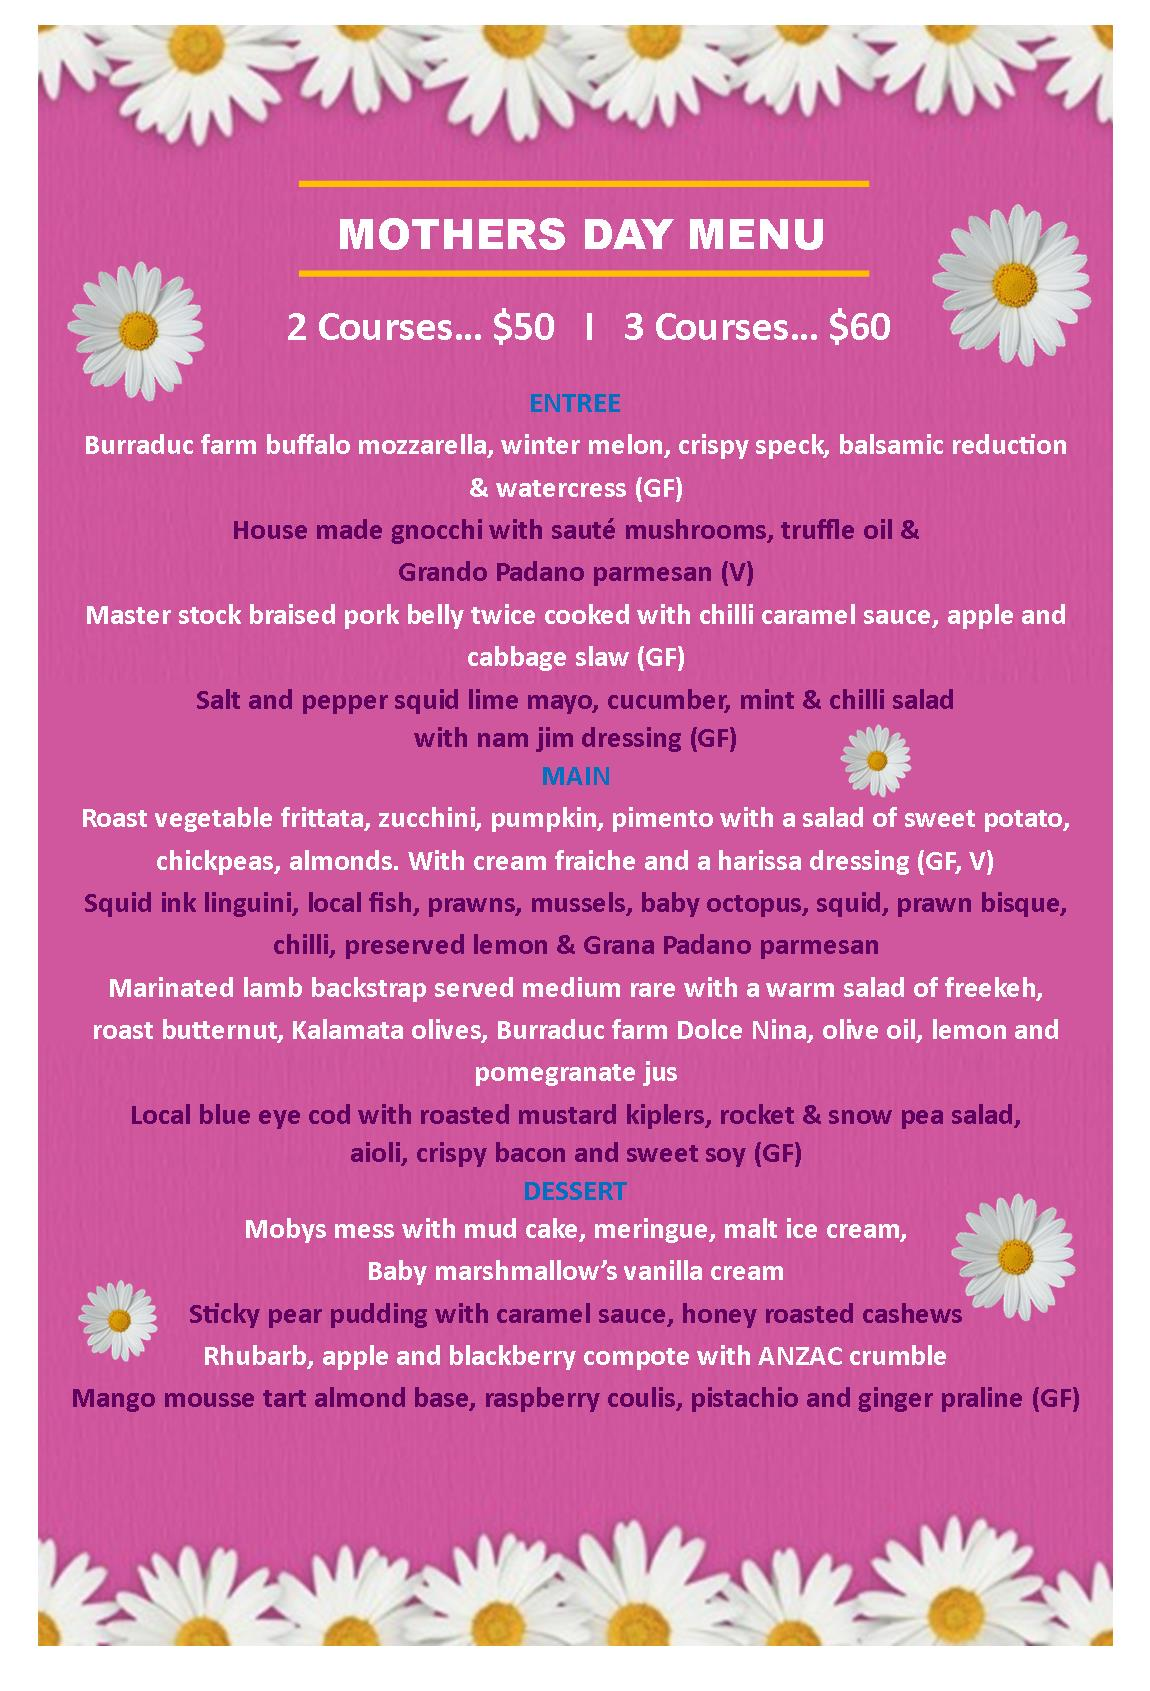 2017 Mothers Day Menu